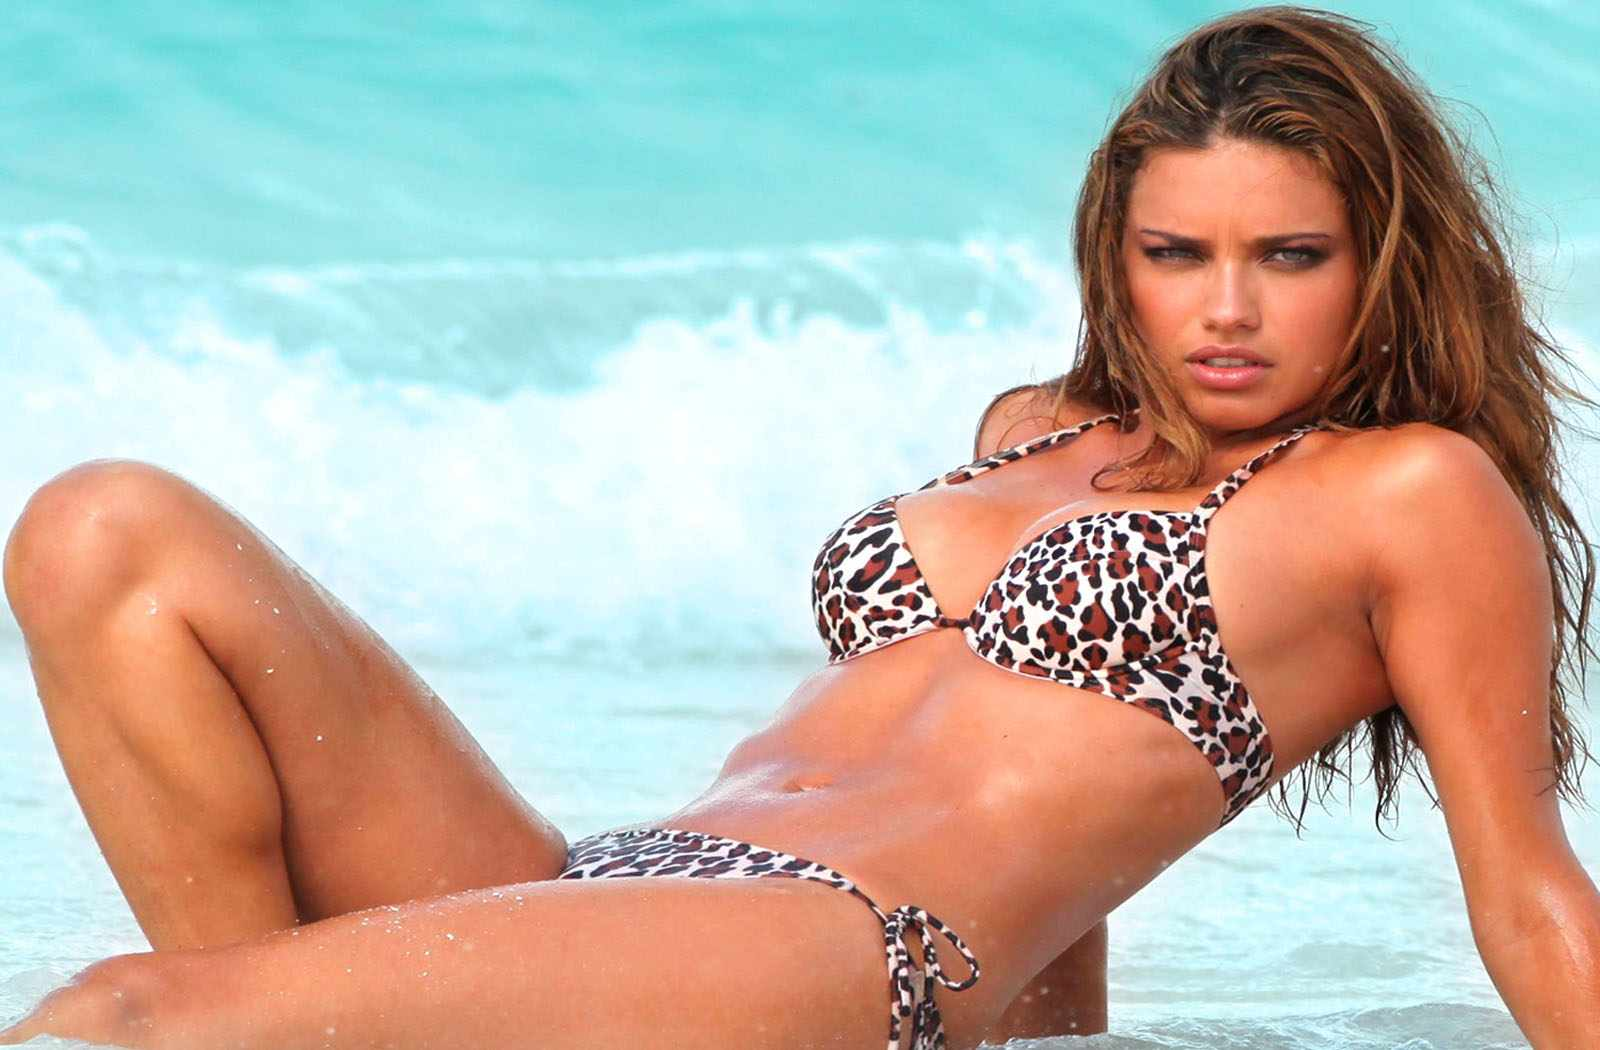 image celebrity: adriana lima hot wallpapers 2012